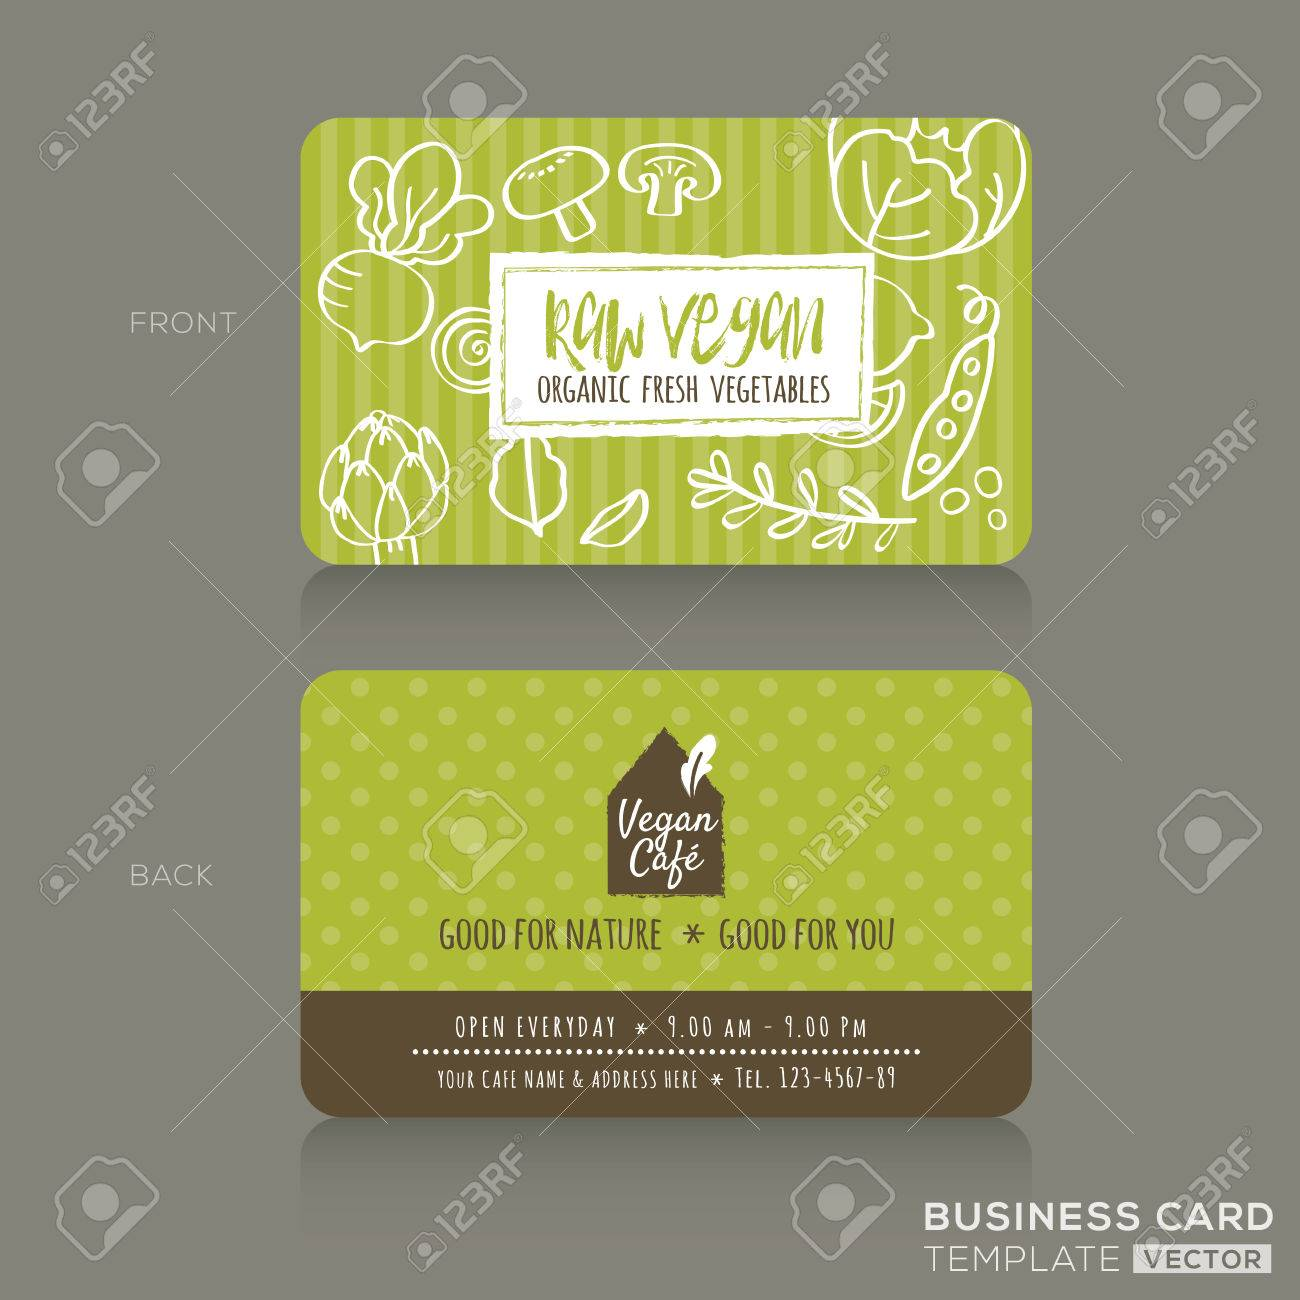 Organic foods shop or vegan cafe business card design template with imagens organic foods shop or vegan cafe business card design template with vegetables and fruits doodle background reheart Image collections